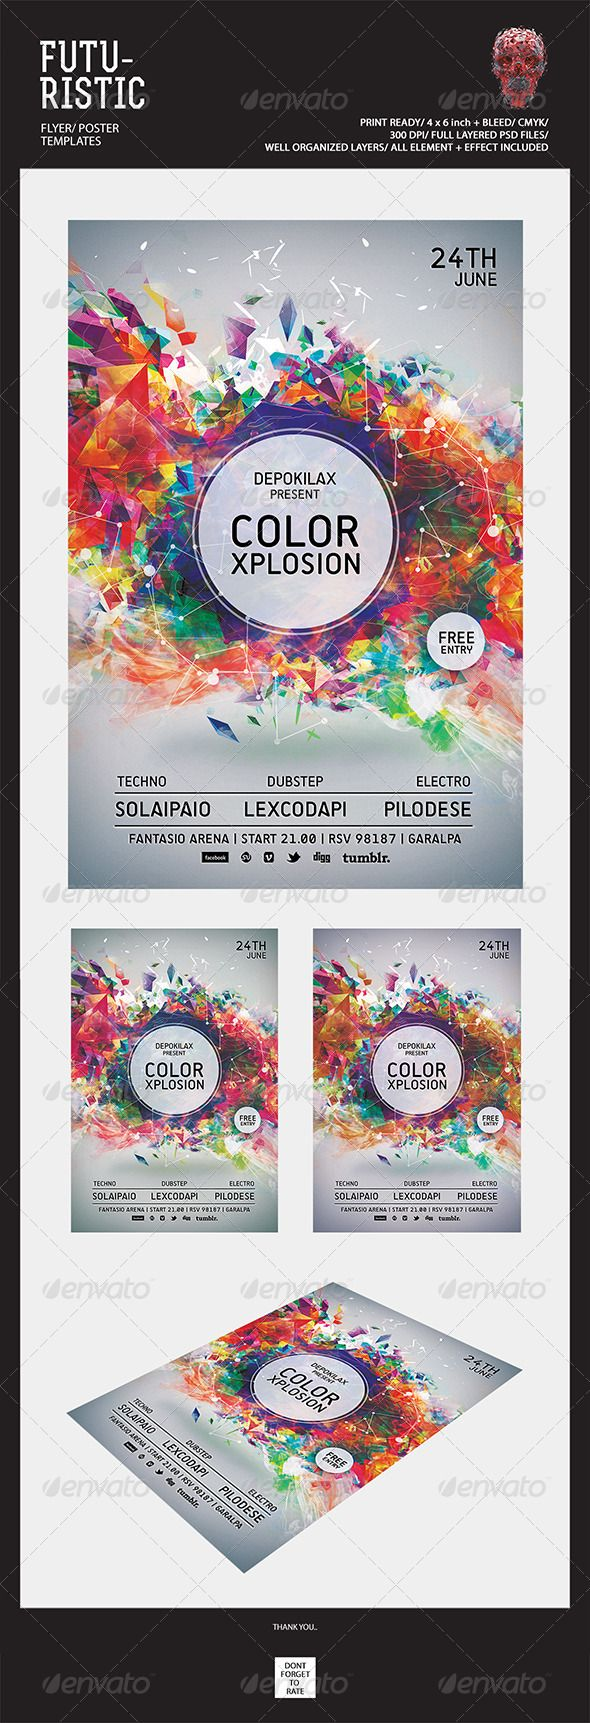 Futuristic Flyer Templates  #abstract #art #bass • Available here → http://graphicriver.net/item/futuristic-flyer-templates/5455491?s_rank=53&ref=pxcr